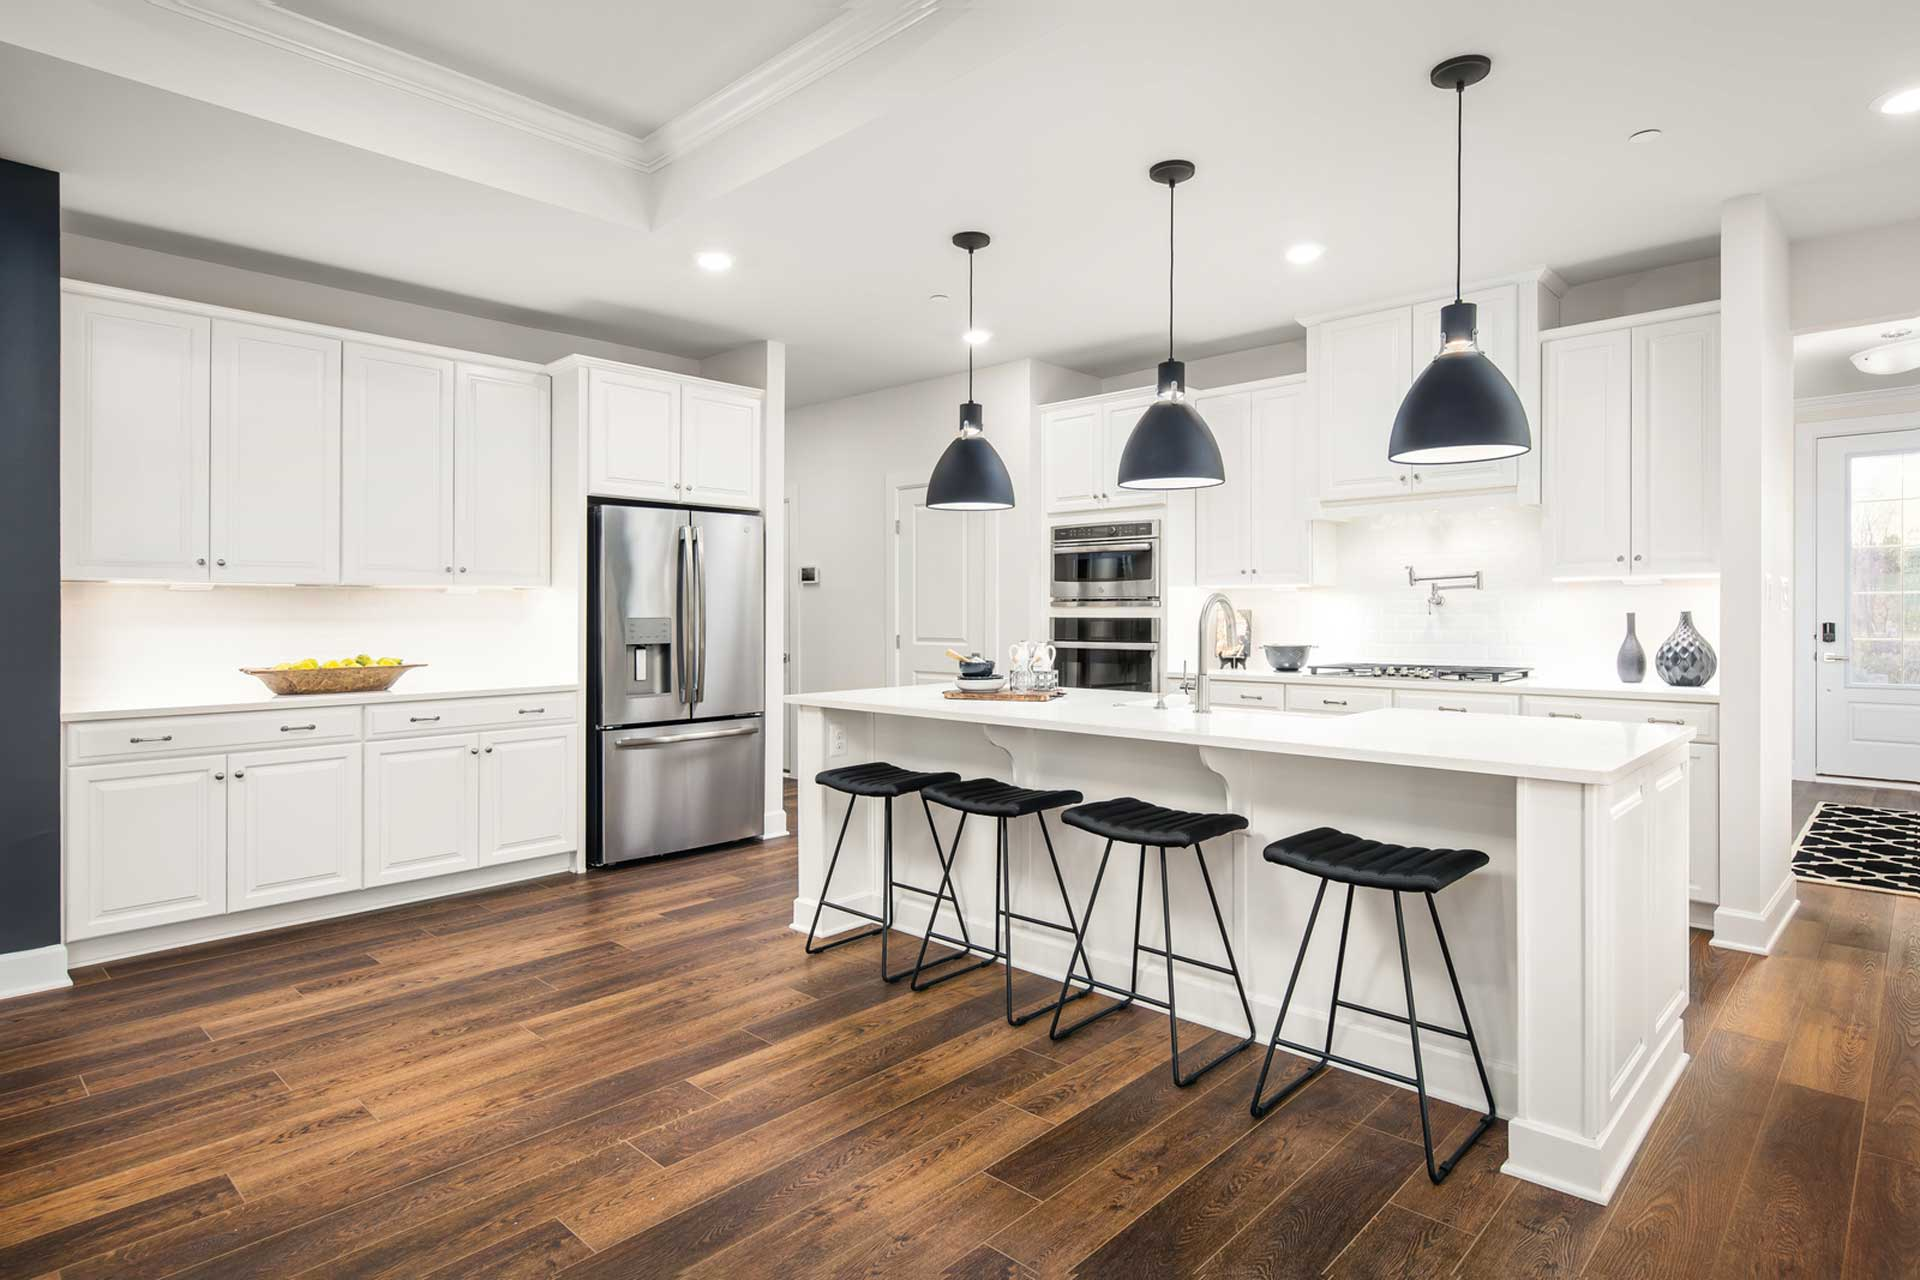 Interior of white kitchen with hardwood floors